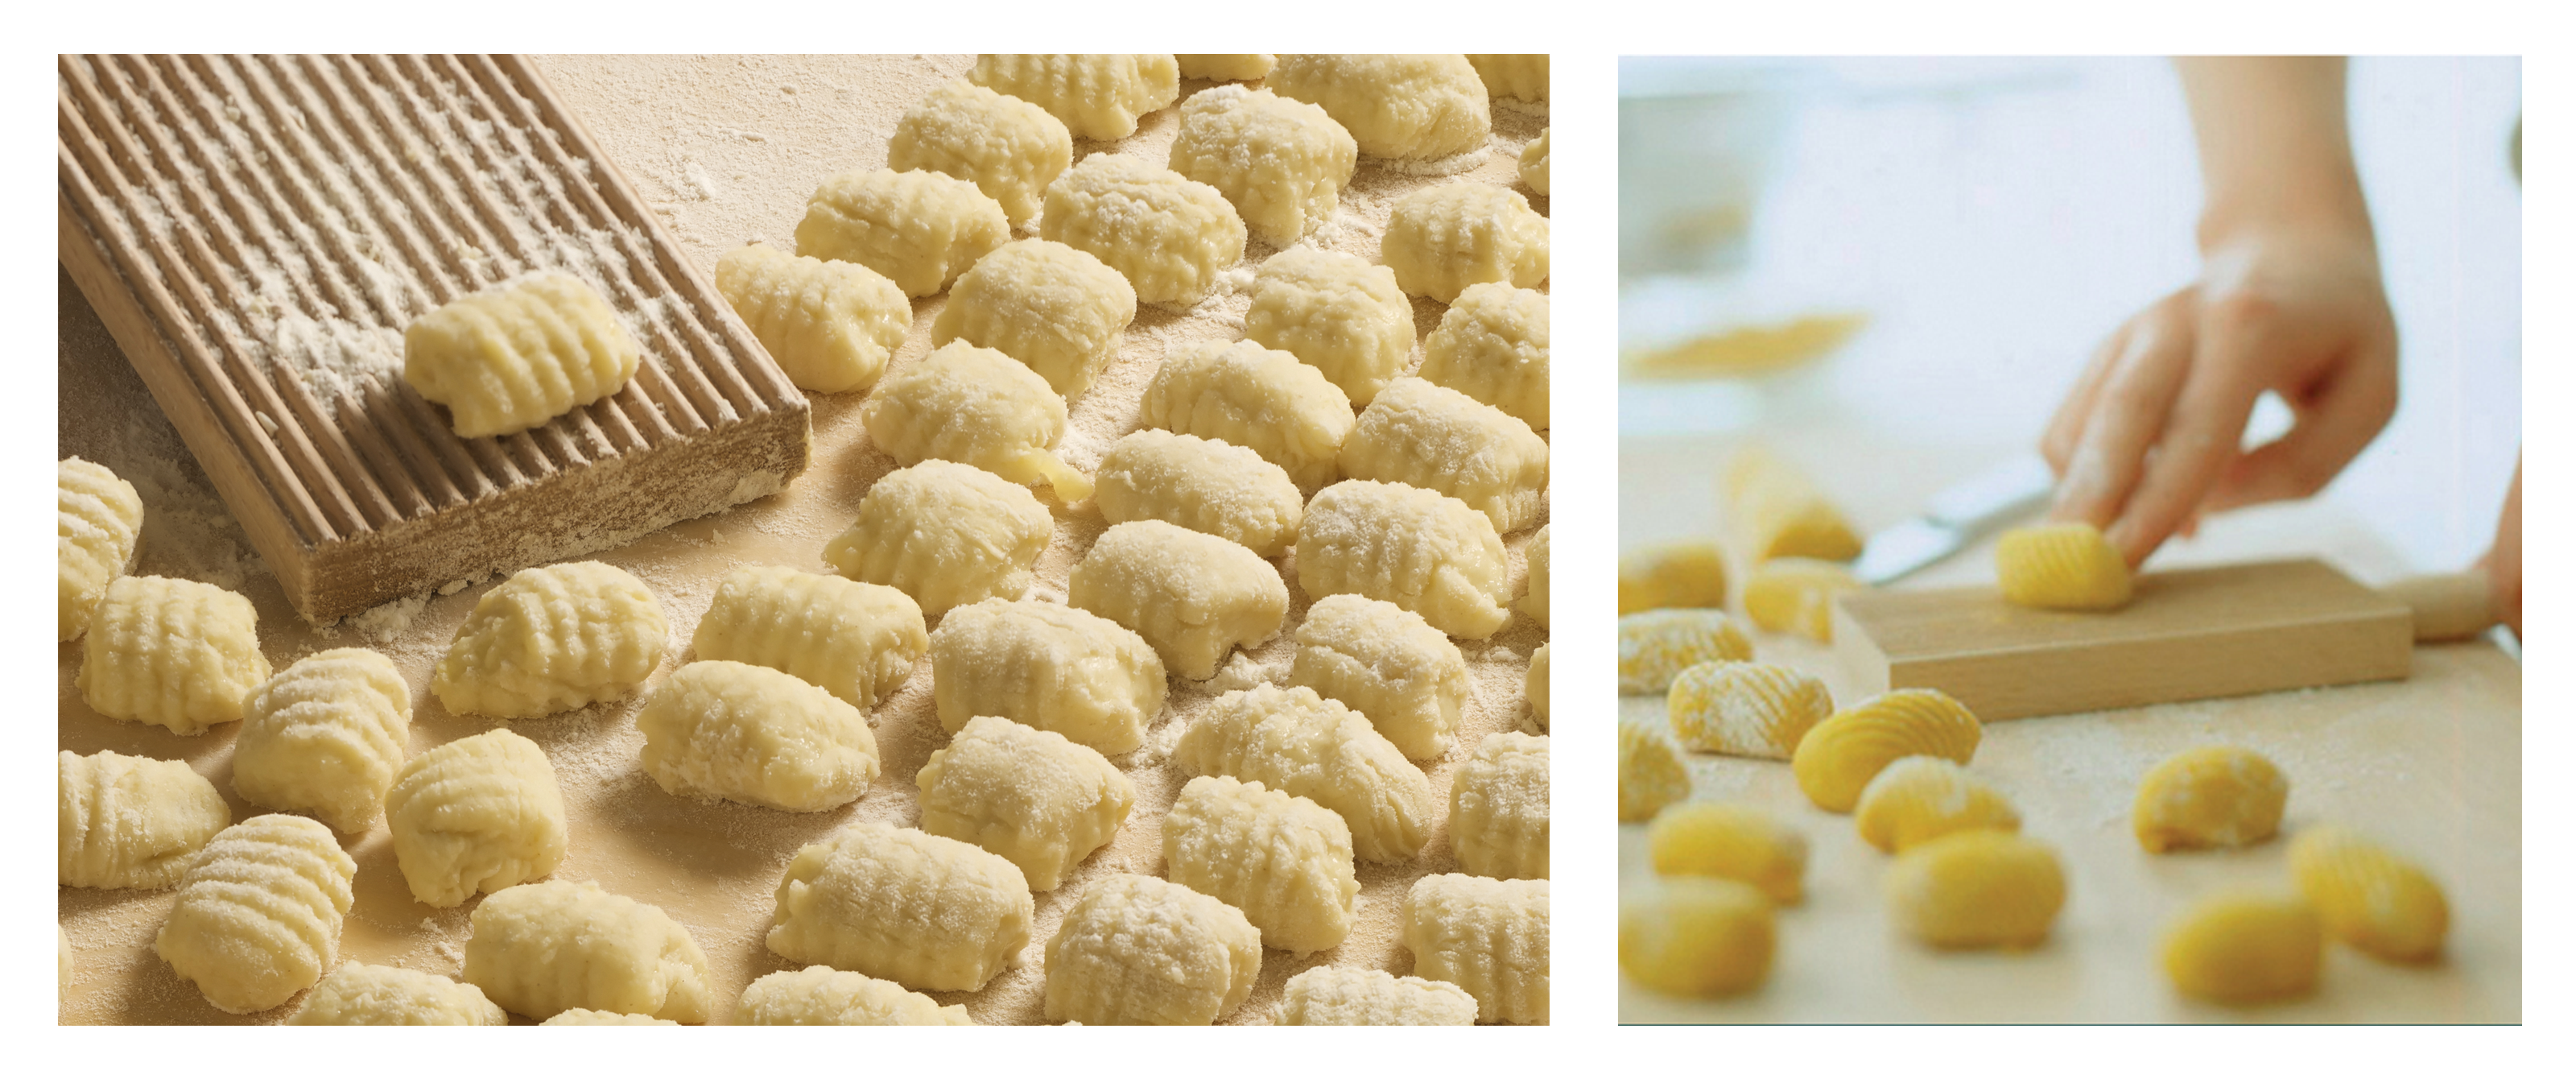 Gnocchi-product-description